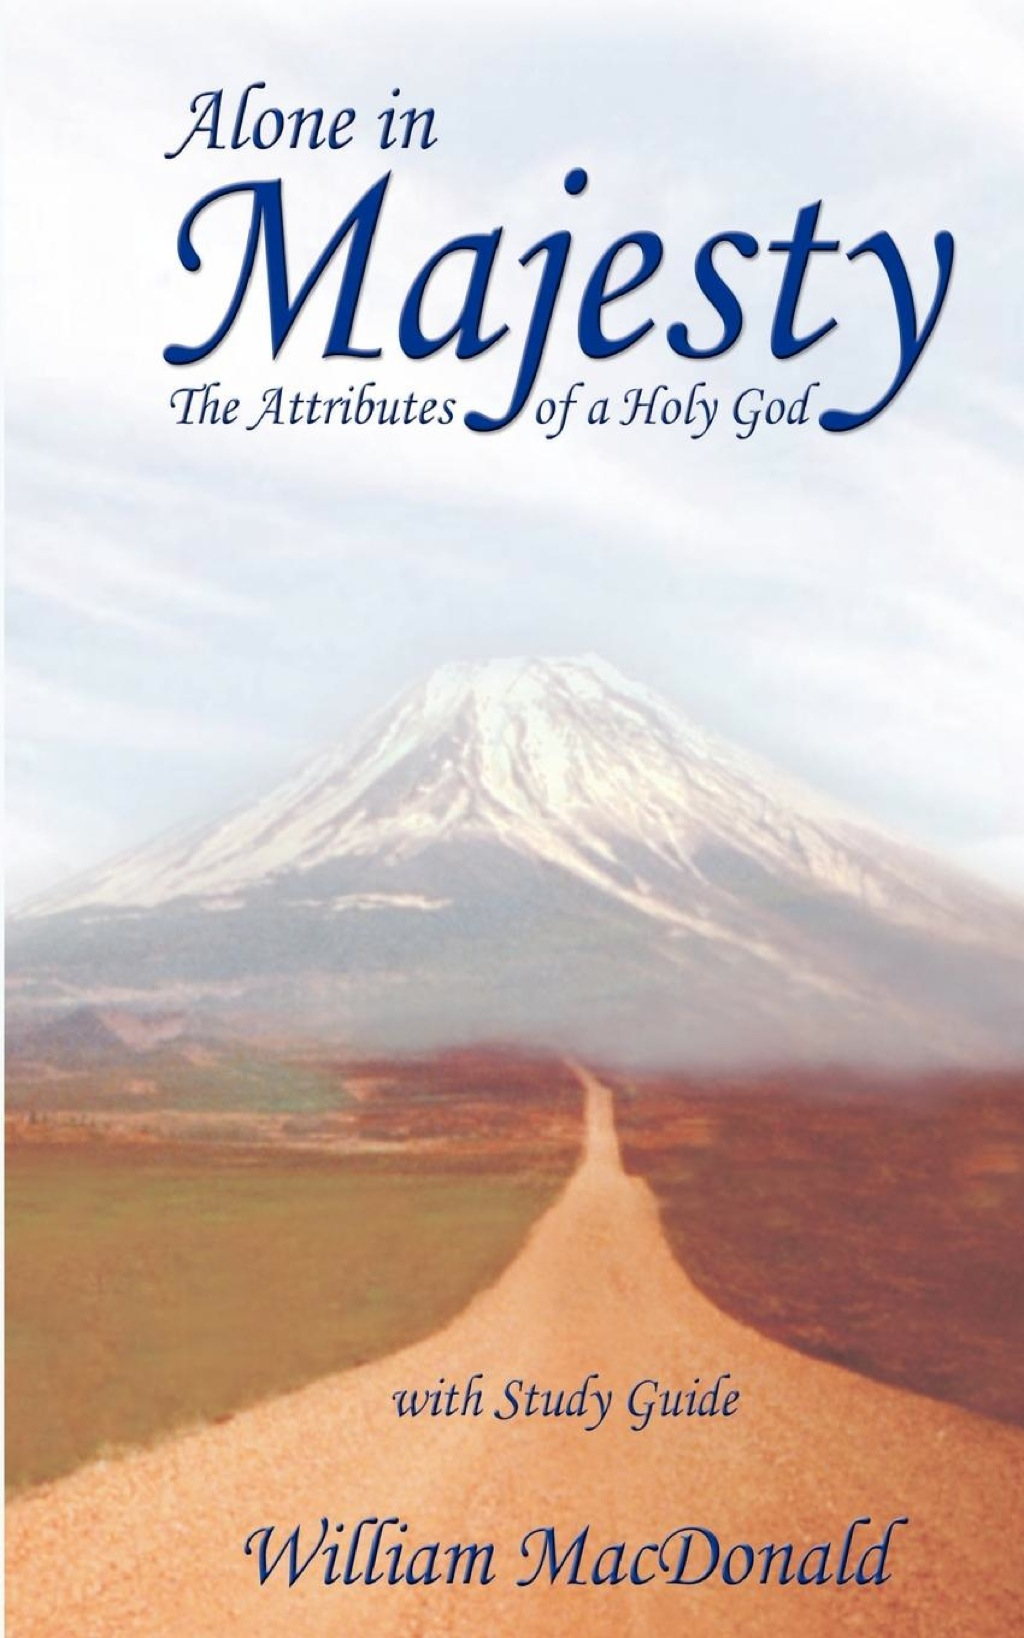 Alone in Majesty with Study Guide (eBook)